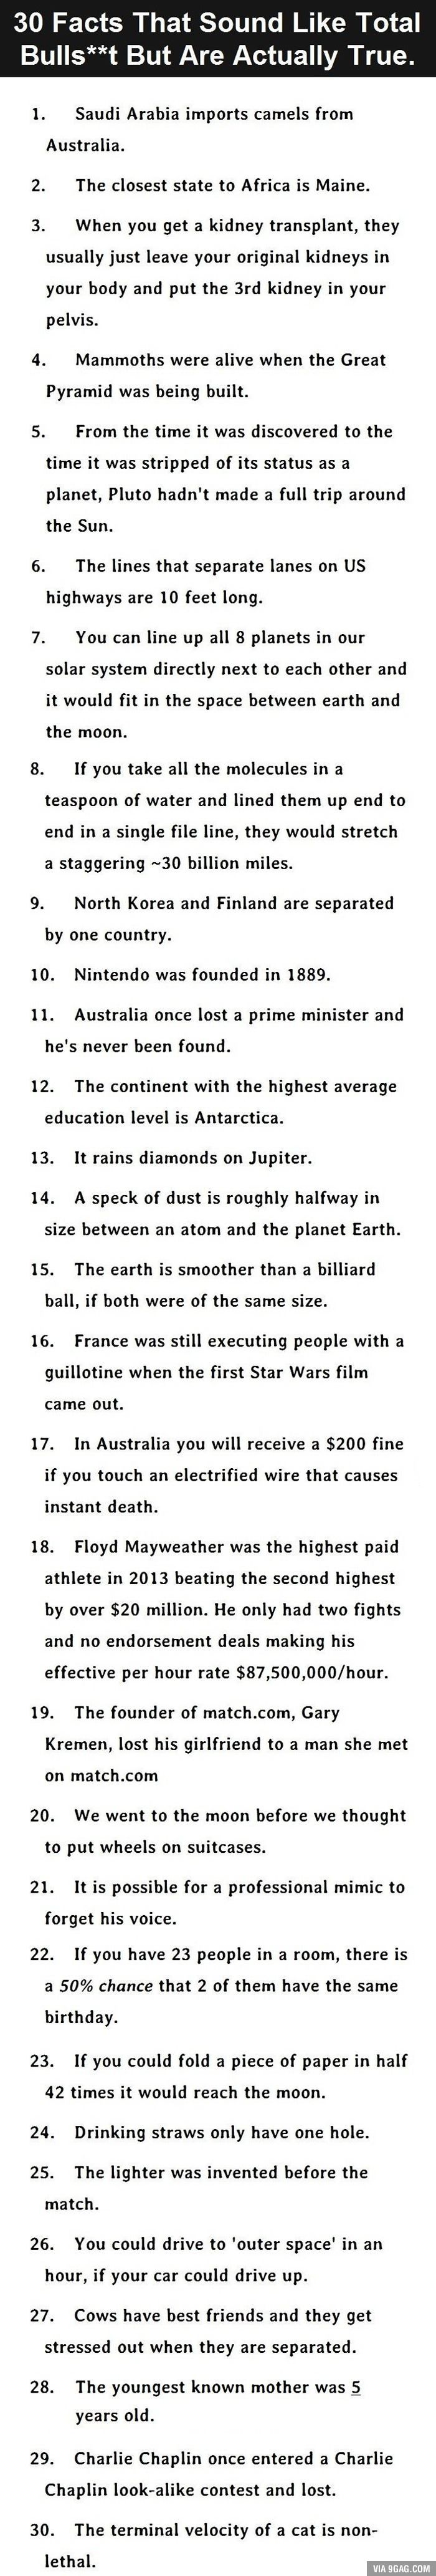 Facts That Sound Like BS But Are Actually True Is Mind - 20 absurd facts sound made up but are actually completely true